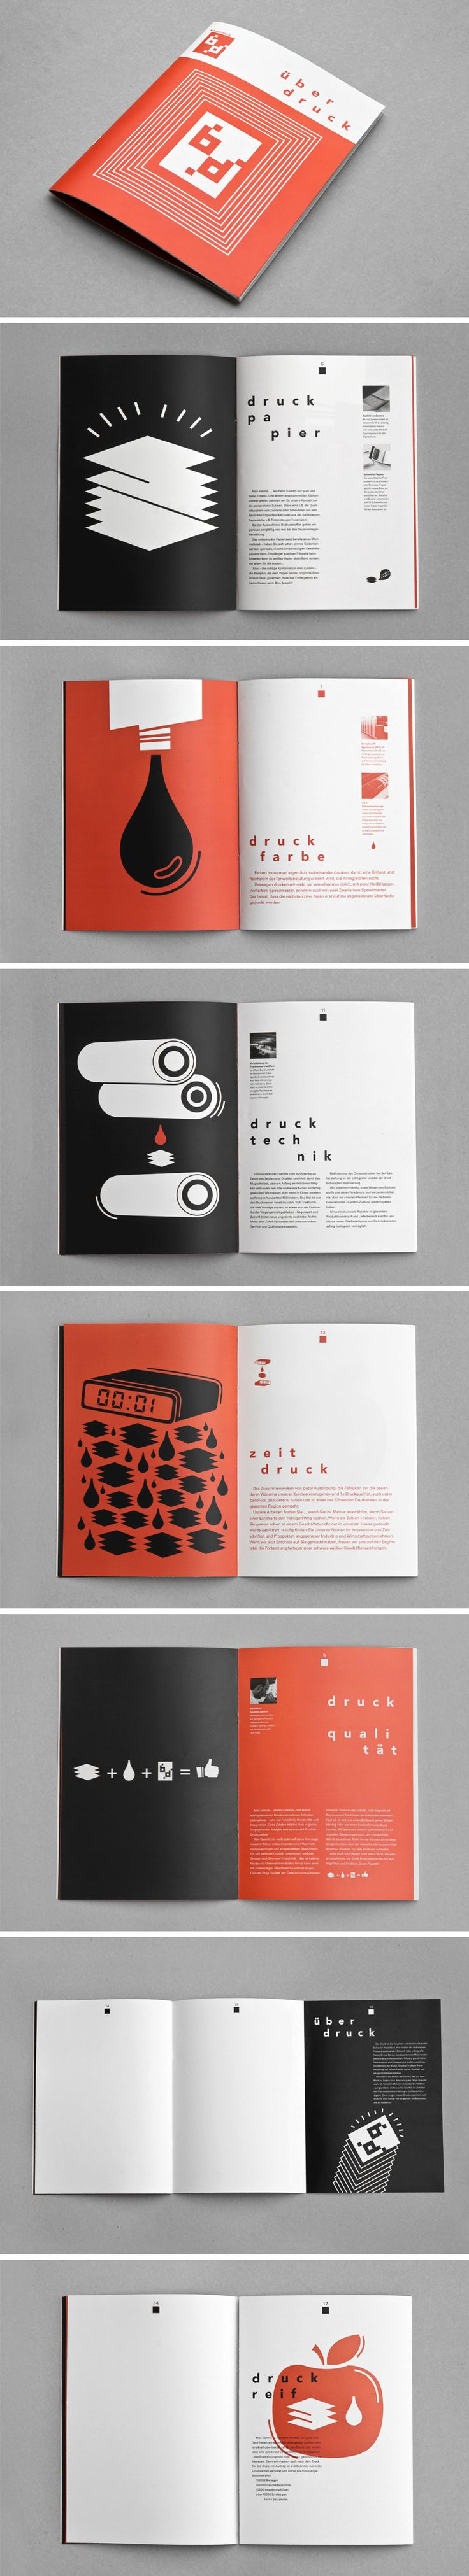 Bauerdruck Print Shop #Layout #Design #Magazine #Editorial #Illustration